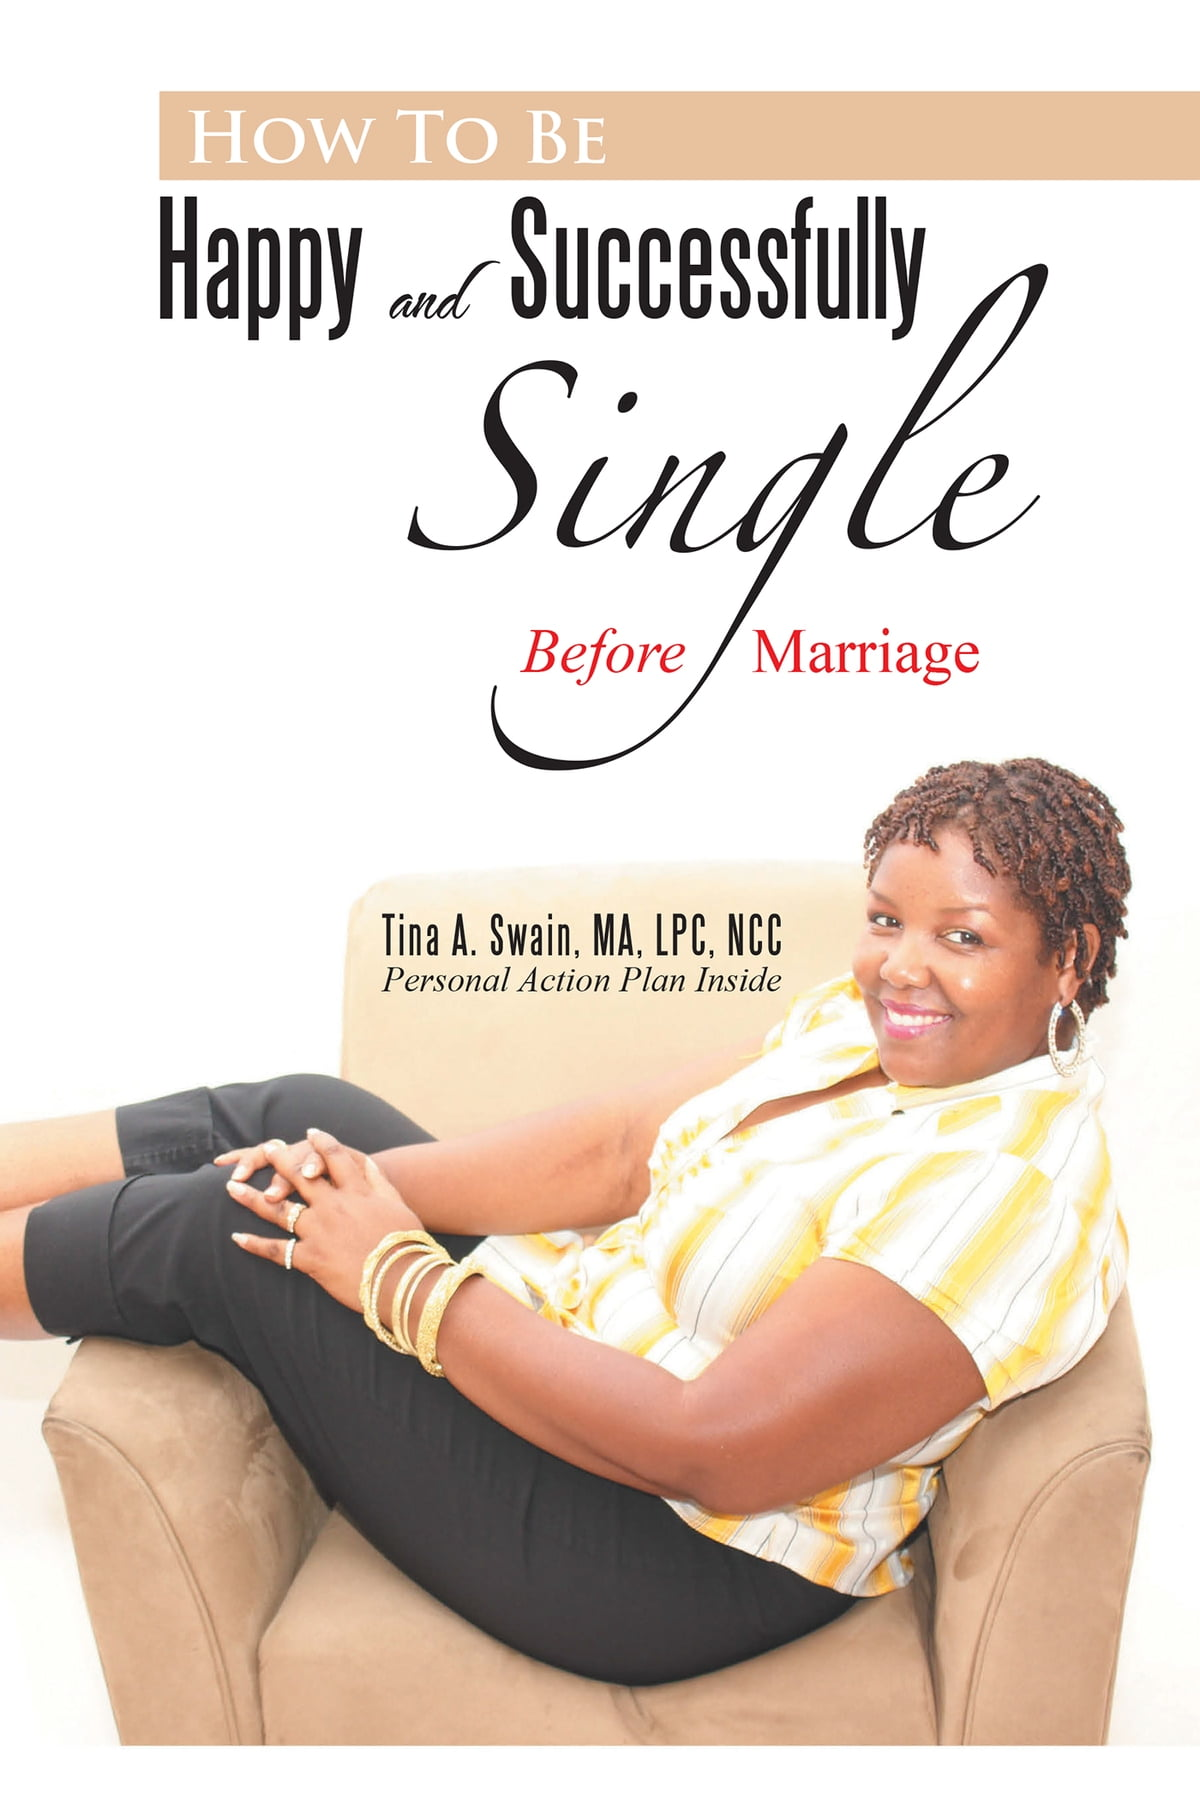 How To Be Happy And Successfully Single Ebook By Tina A Swain, Ma, Lpc